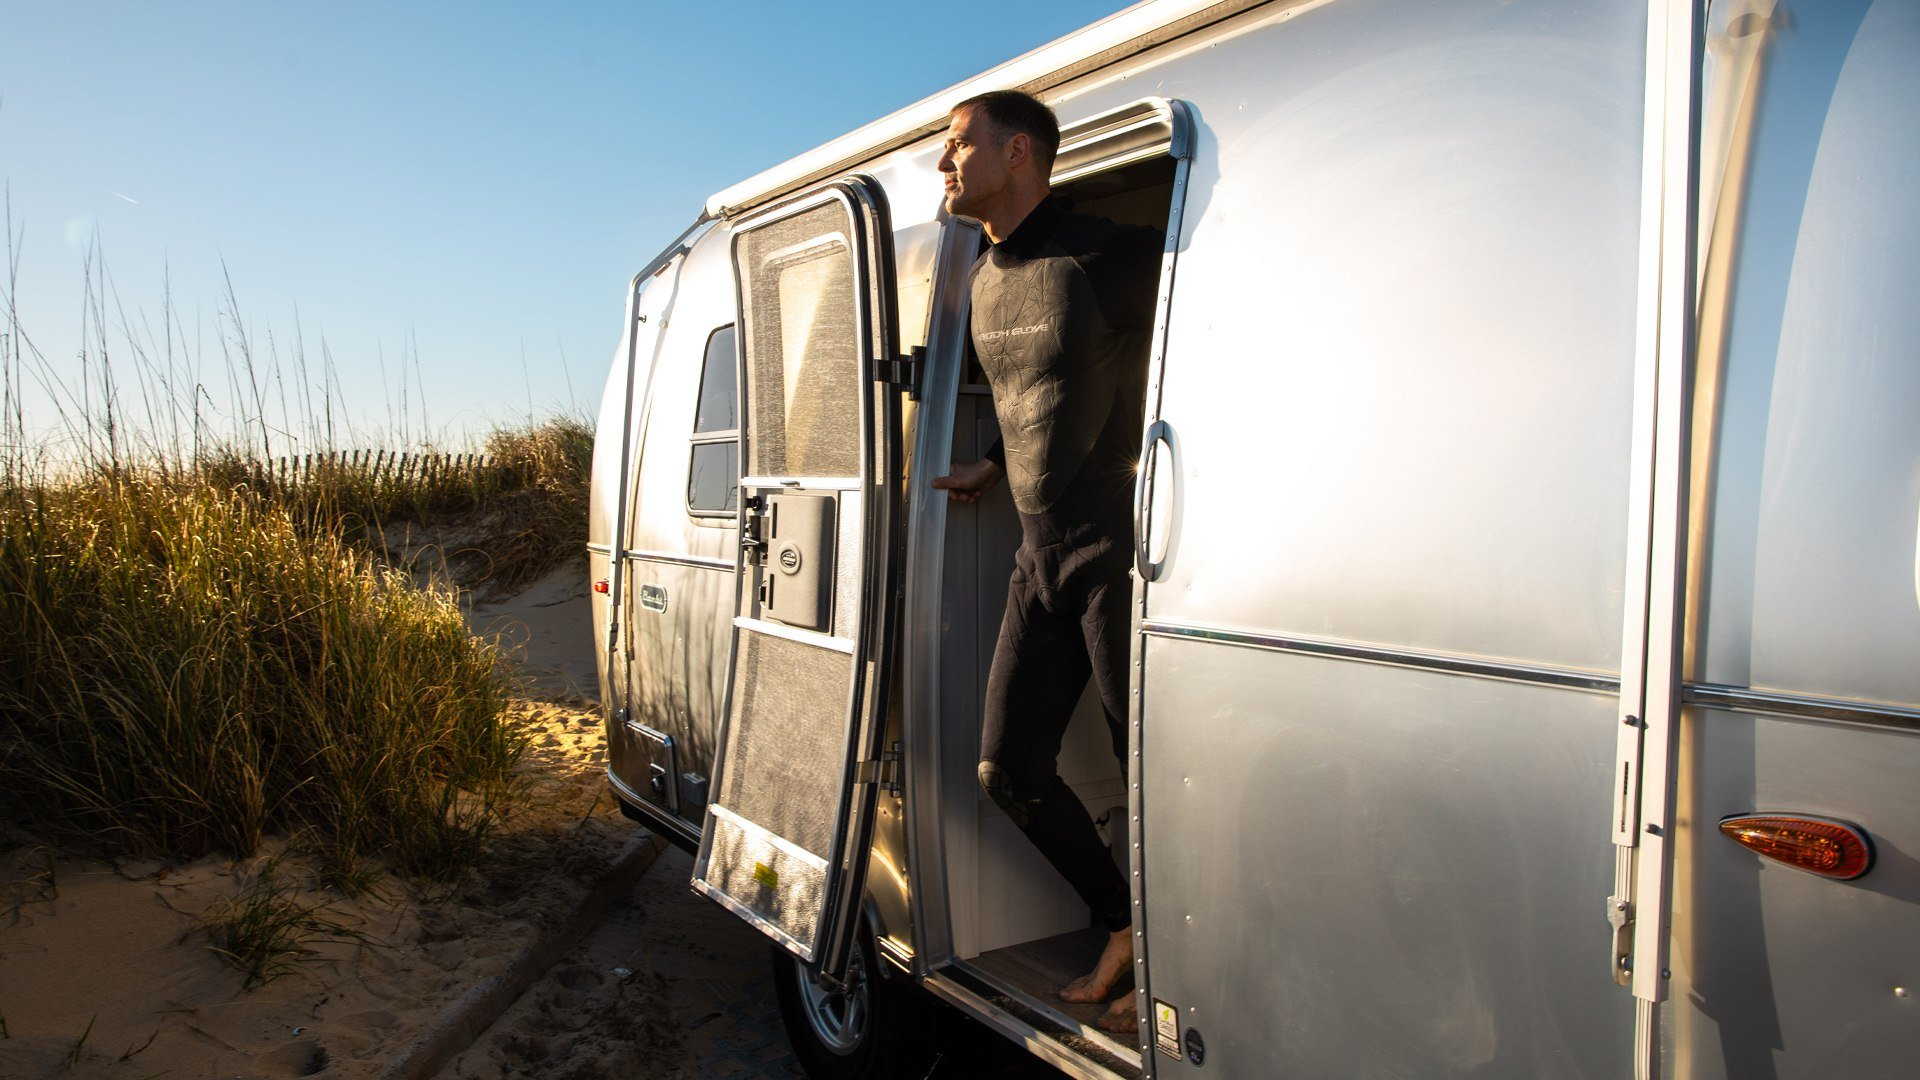 What to look for when buying a used RV or trailer